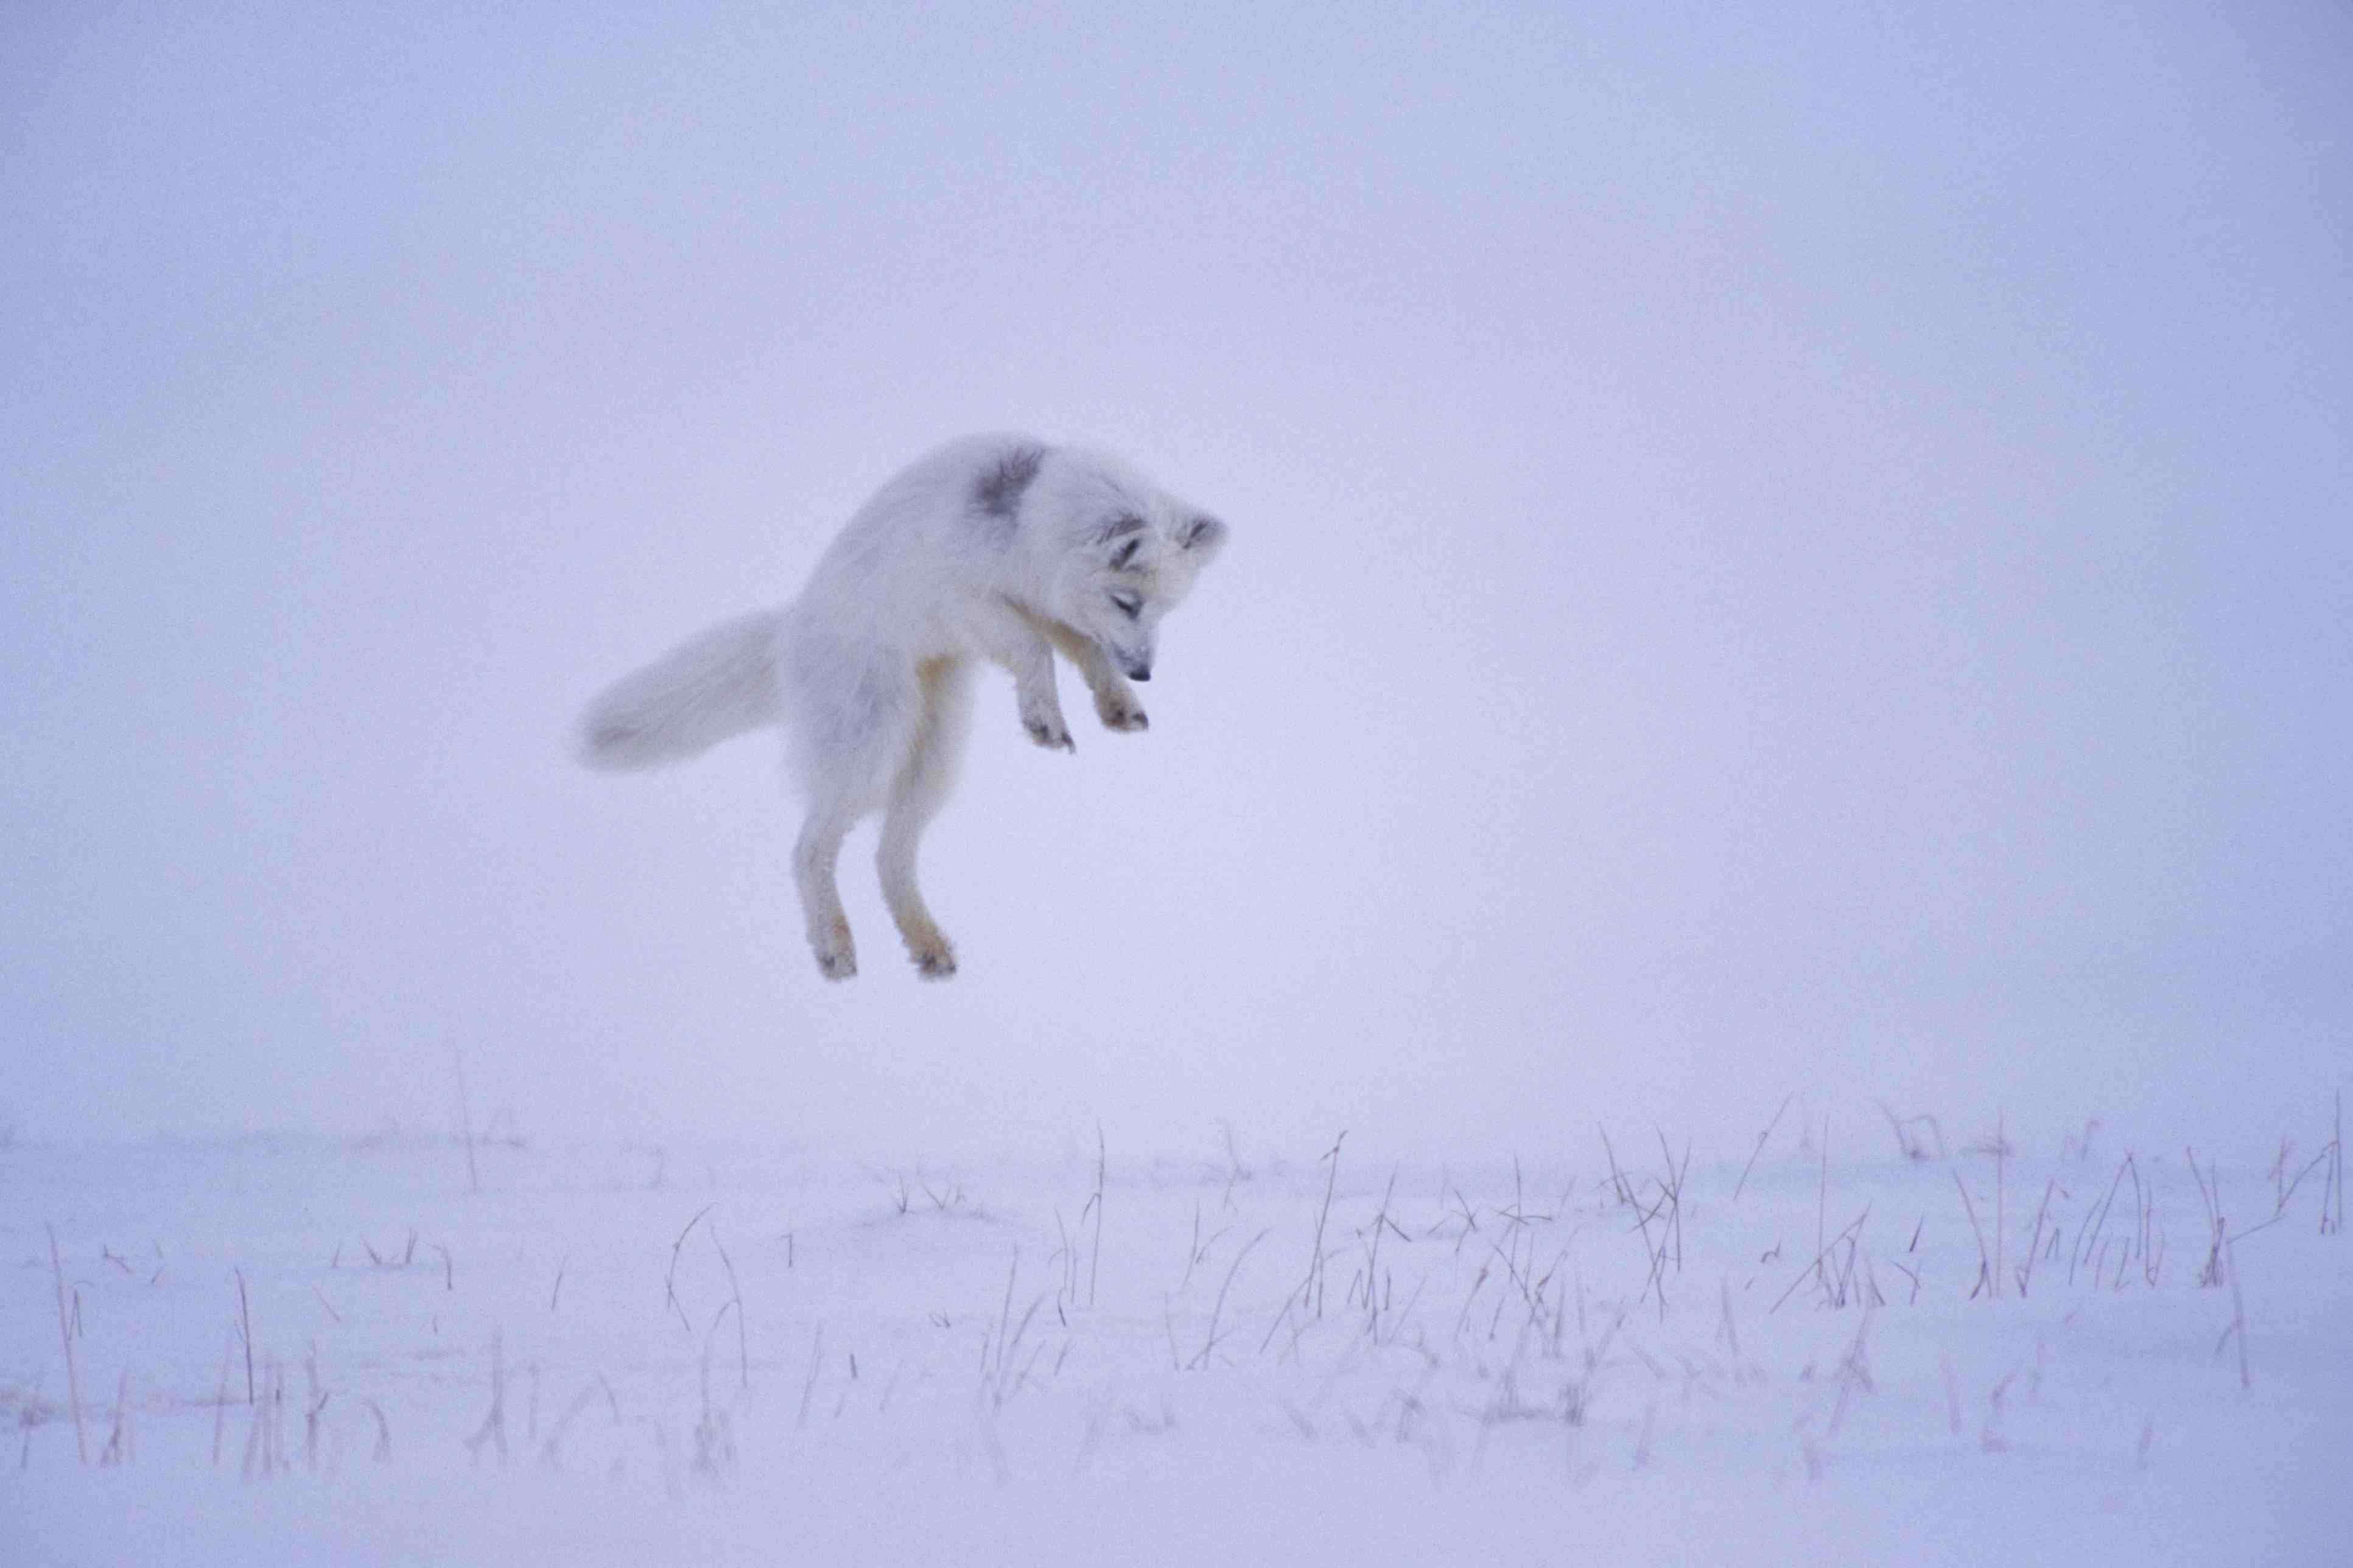 When an arctic fox hears a rodent beneath the snow, it leaps into the air to silently pounce upon prey from above.